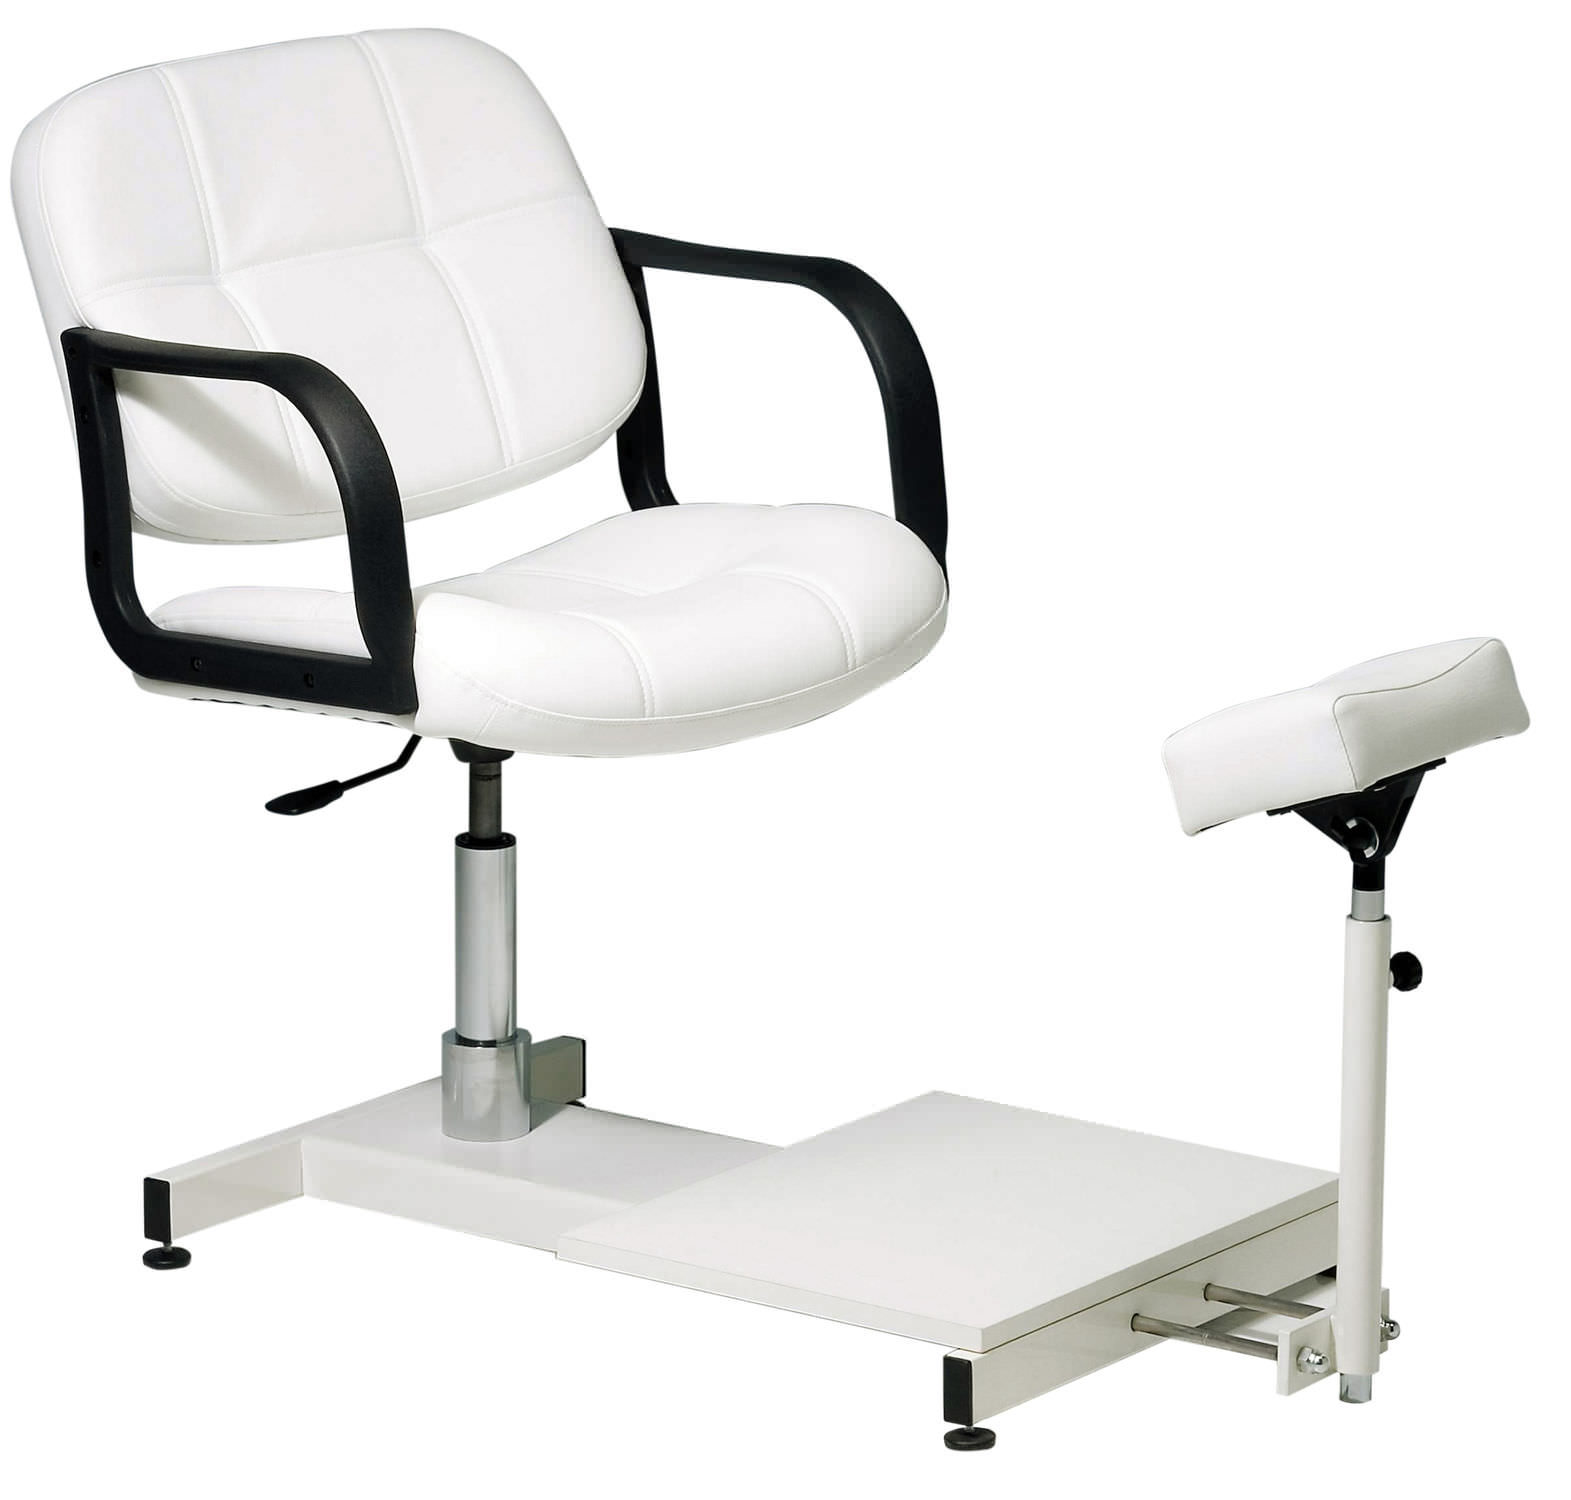 vinyl pedicure chair / with hydraulic pump - CONFORT  sc 1 st  ArchiExpo & Vinyl pedicure chair / with hydraulic pump - CONFORT - BMP Srl